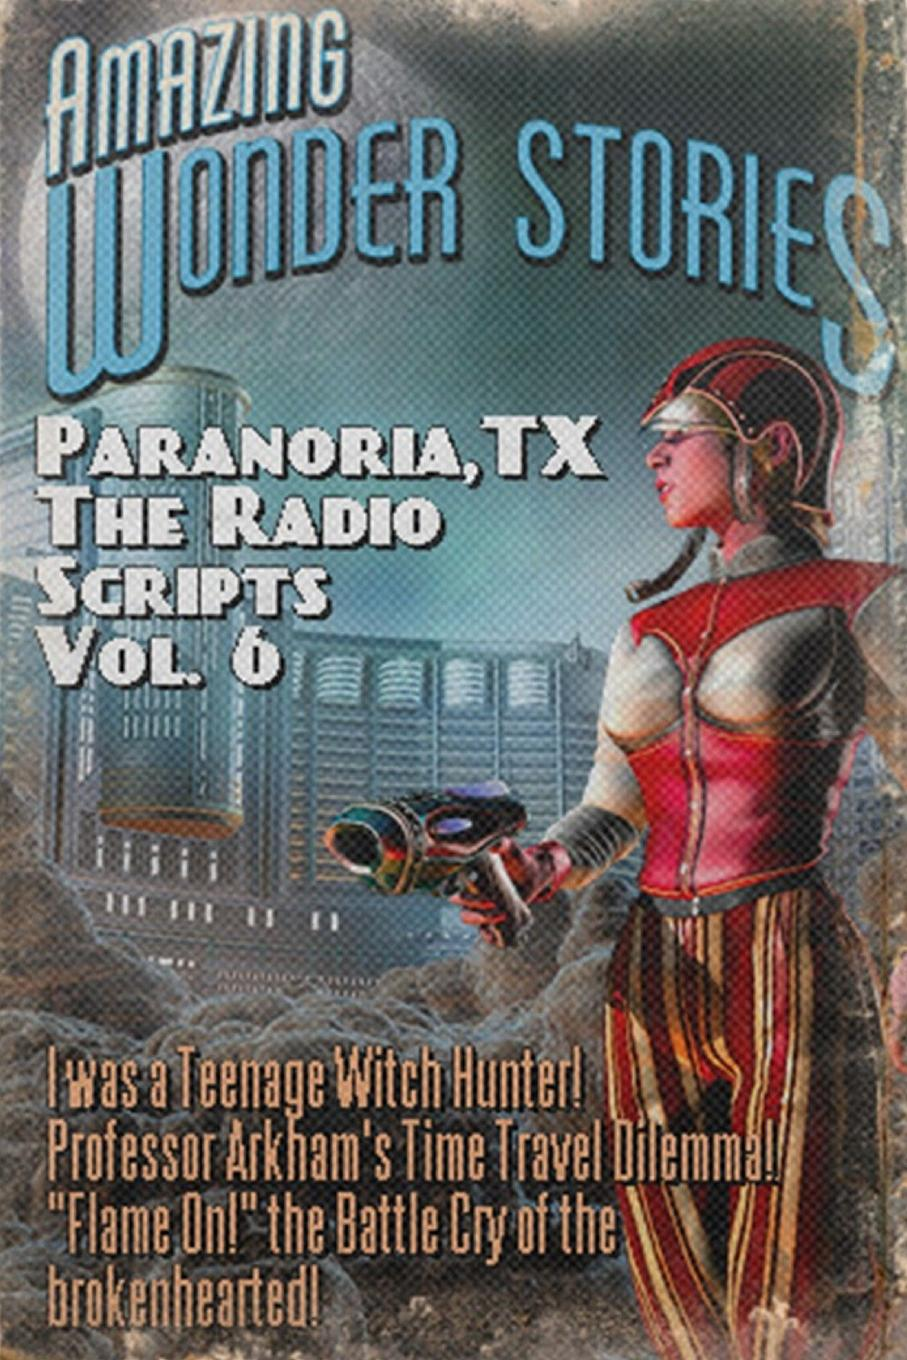 George Jones Paranoria, TX - The Radio Scripts Vol. 6 потолочный светильник ideal lux harem pl3 page 8 page 7 page 6 page 8 page 3 page 5 page 9